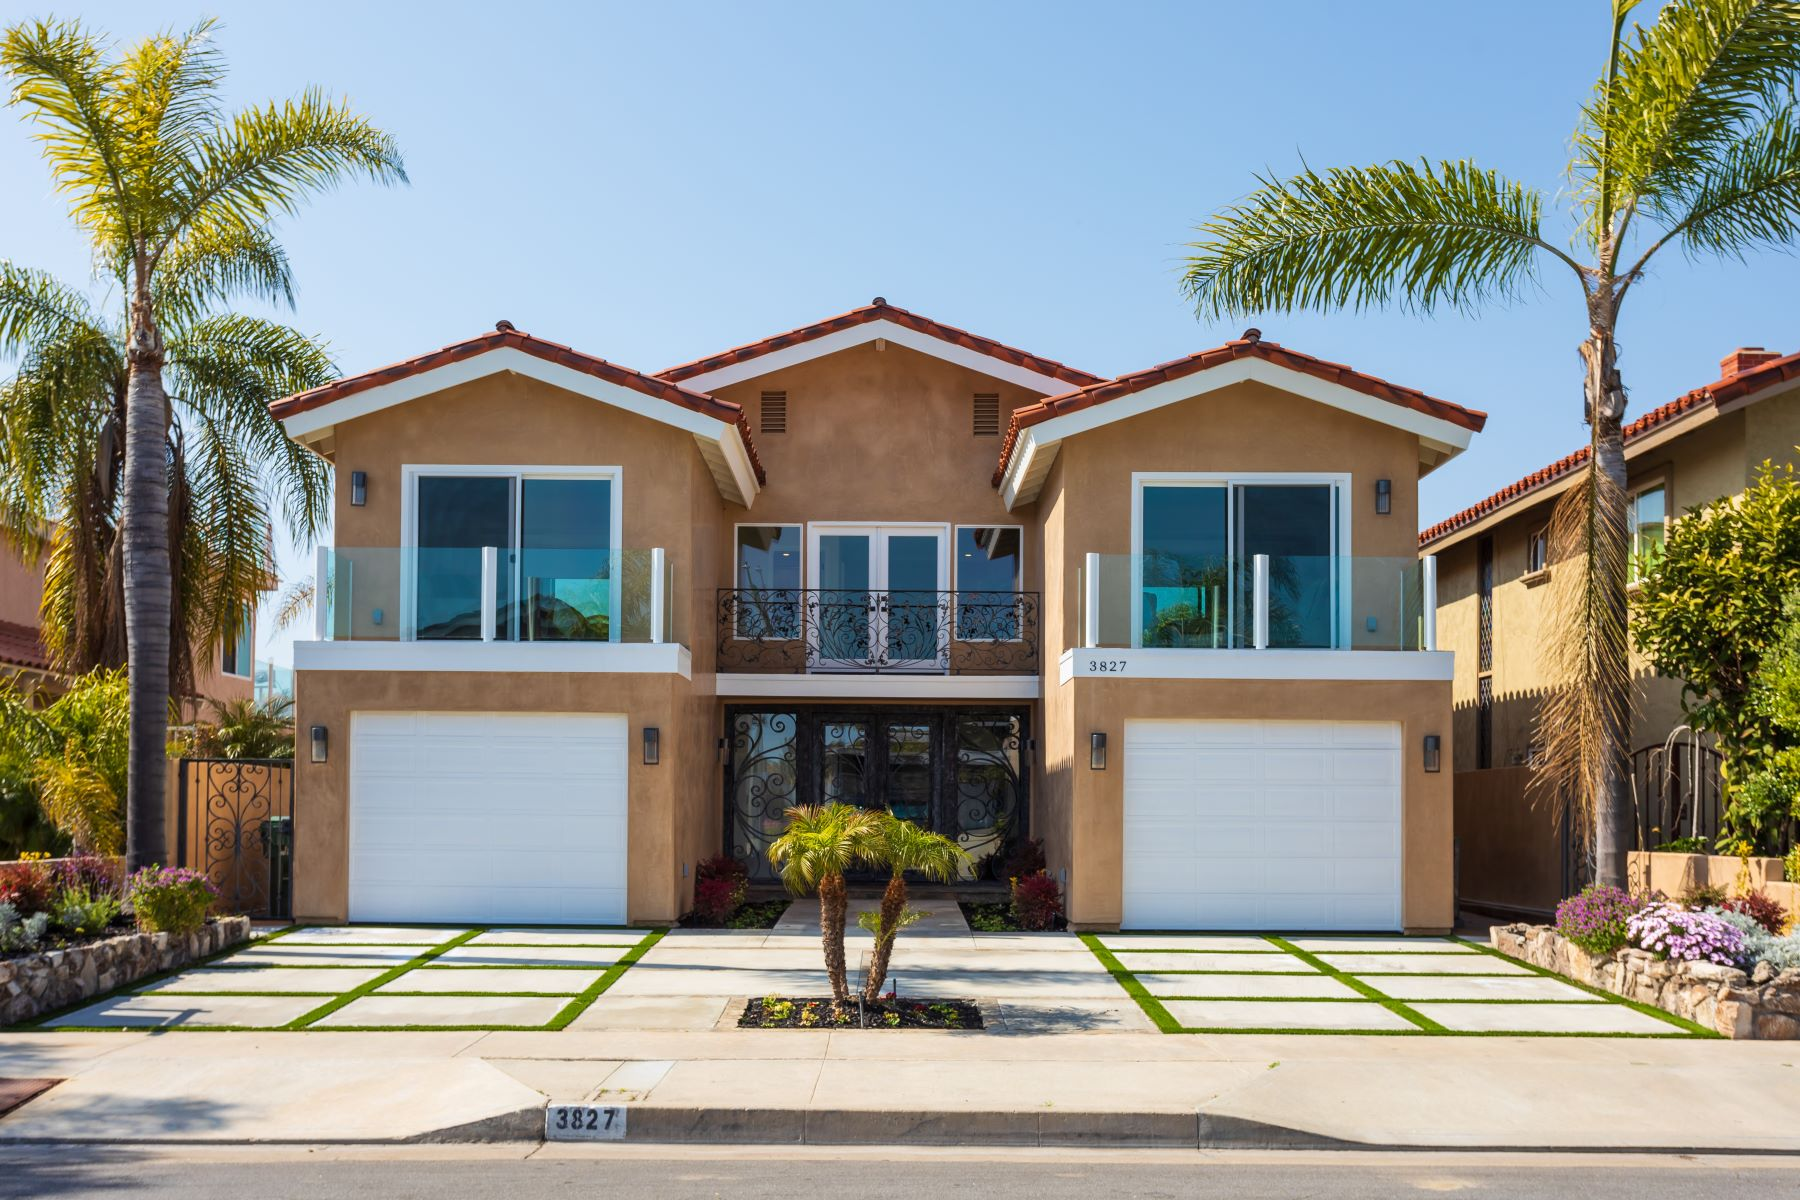 Single Family Homes for Sale at 3827 Mistral Dr Huntington Beach, California 92649 United States